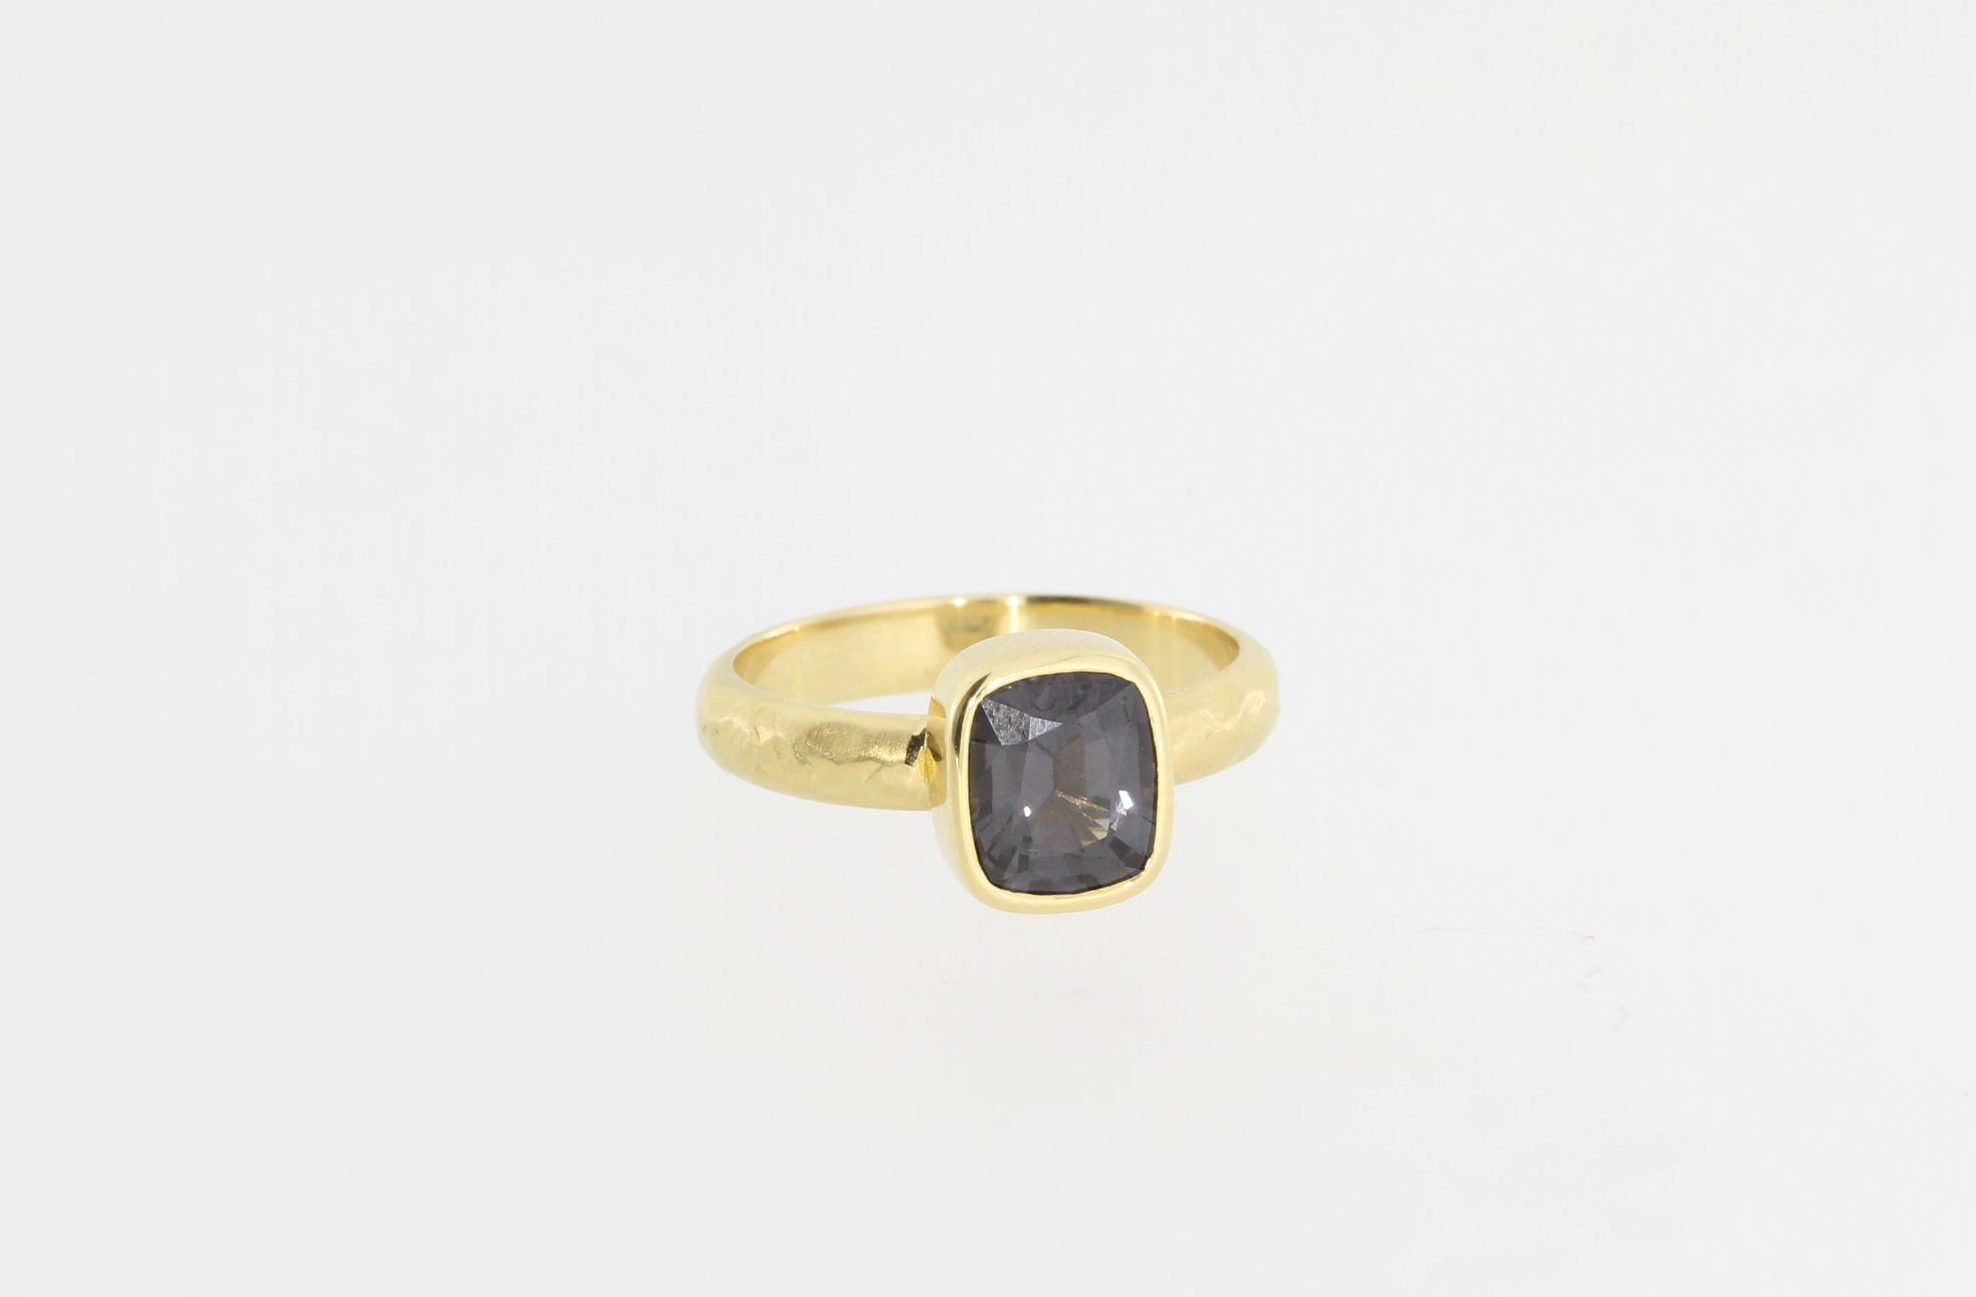 Payet 18ct & grey spinel ring